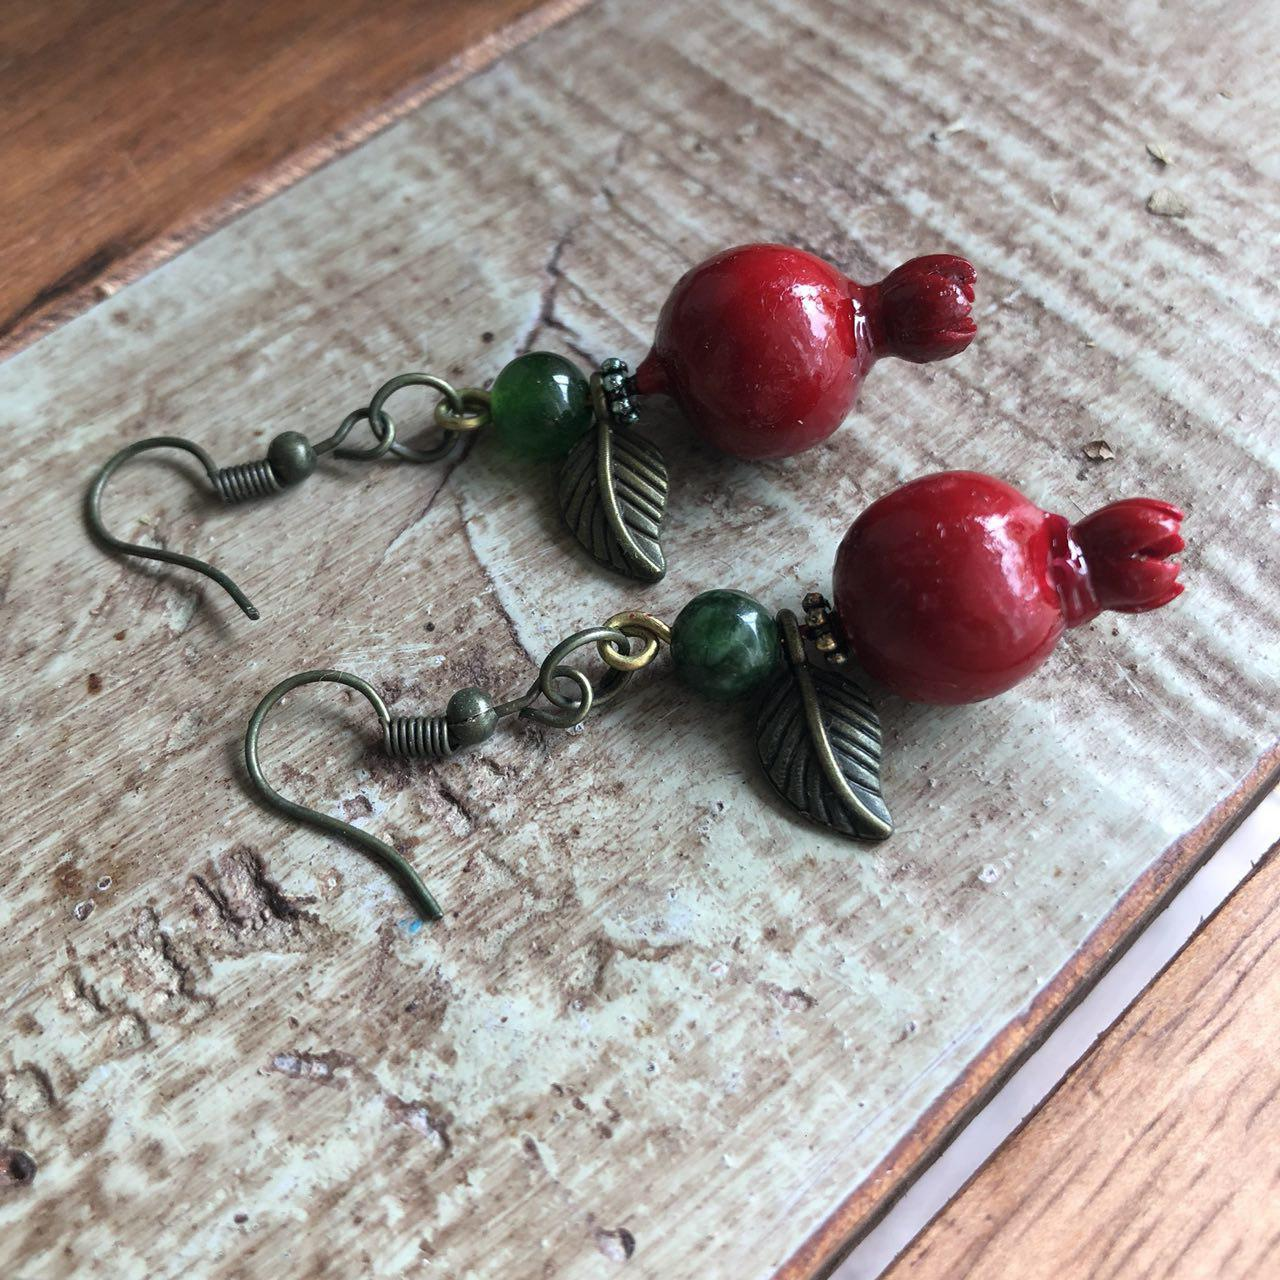 Fakhte handmade pomegranate earrings (wood and brass)